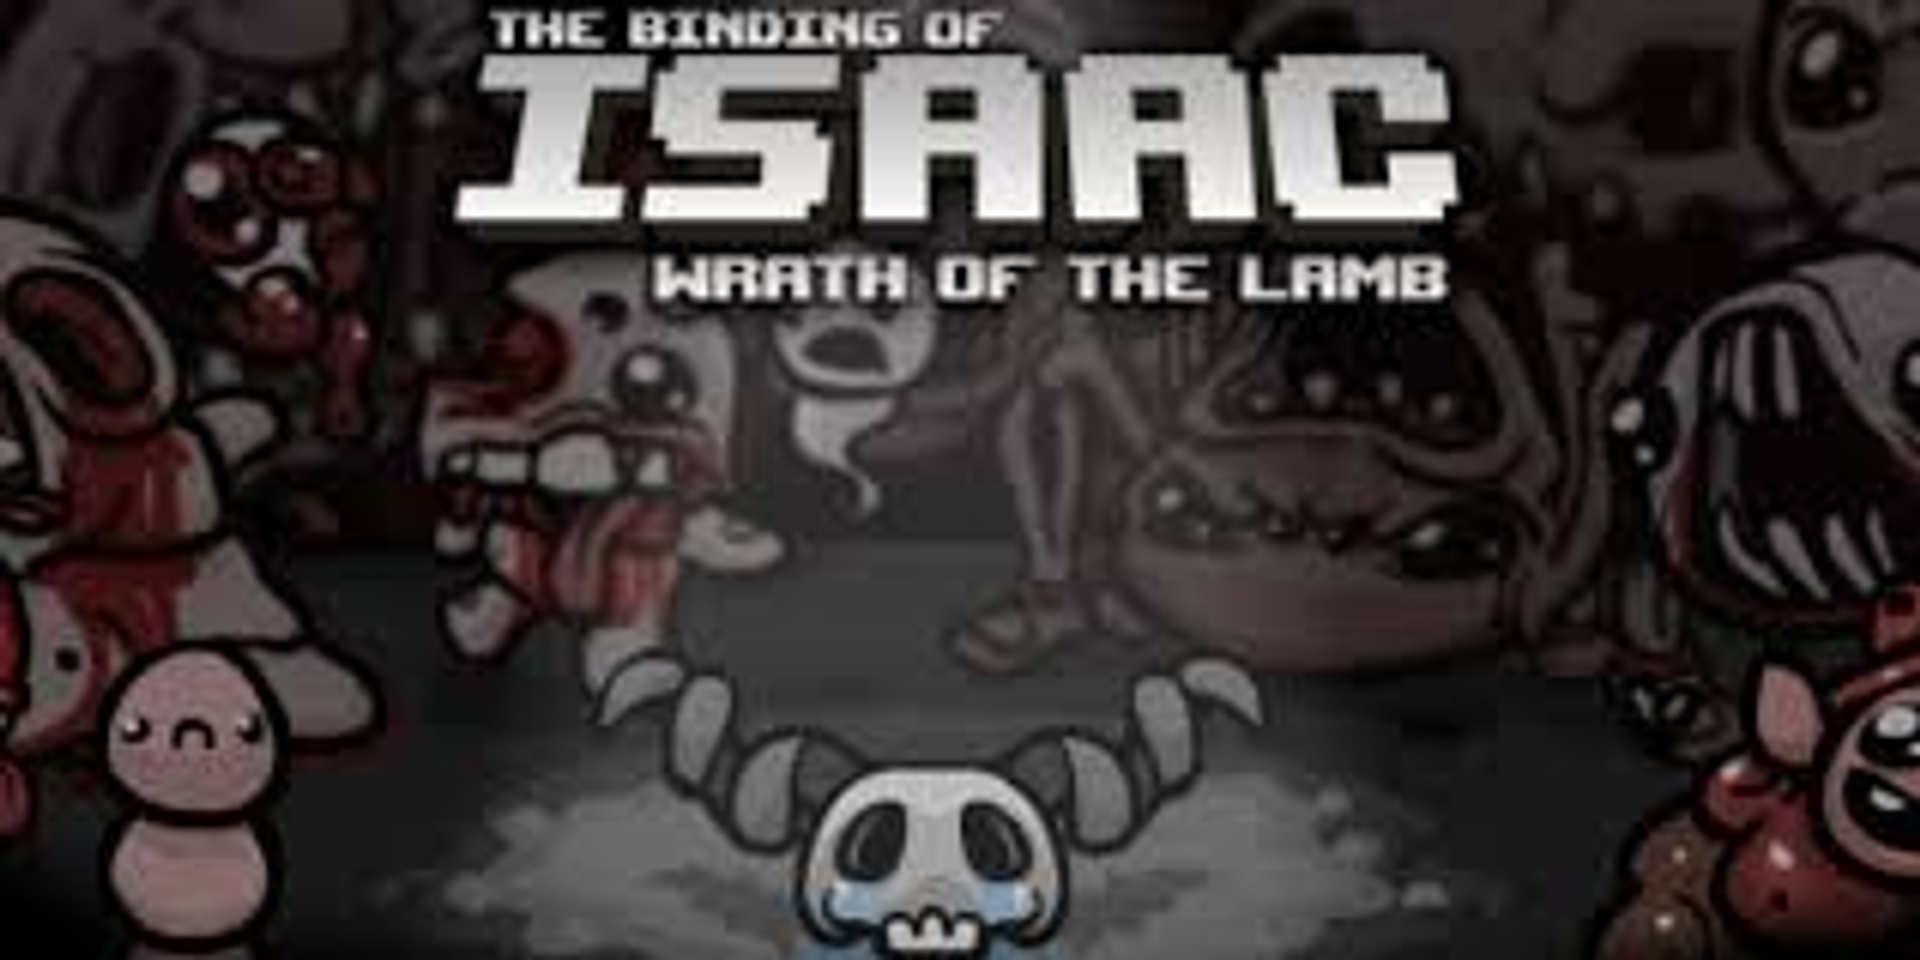 buy The Binding of Isaac: Wrath of the Lamb cd key for all platform